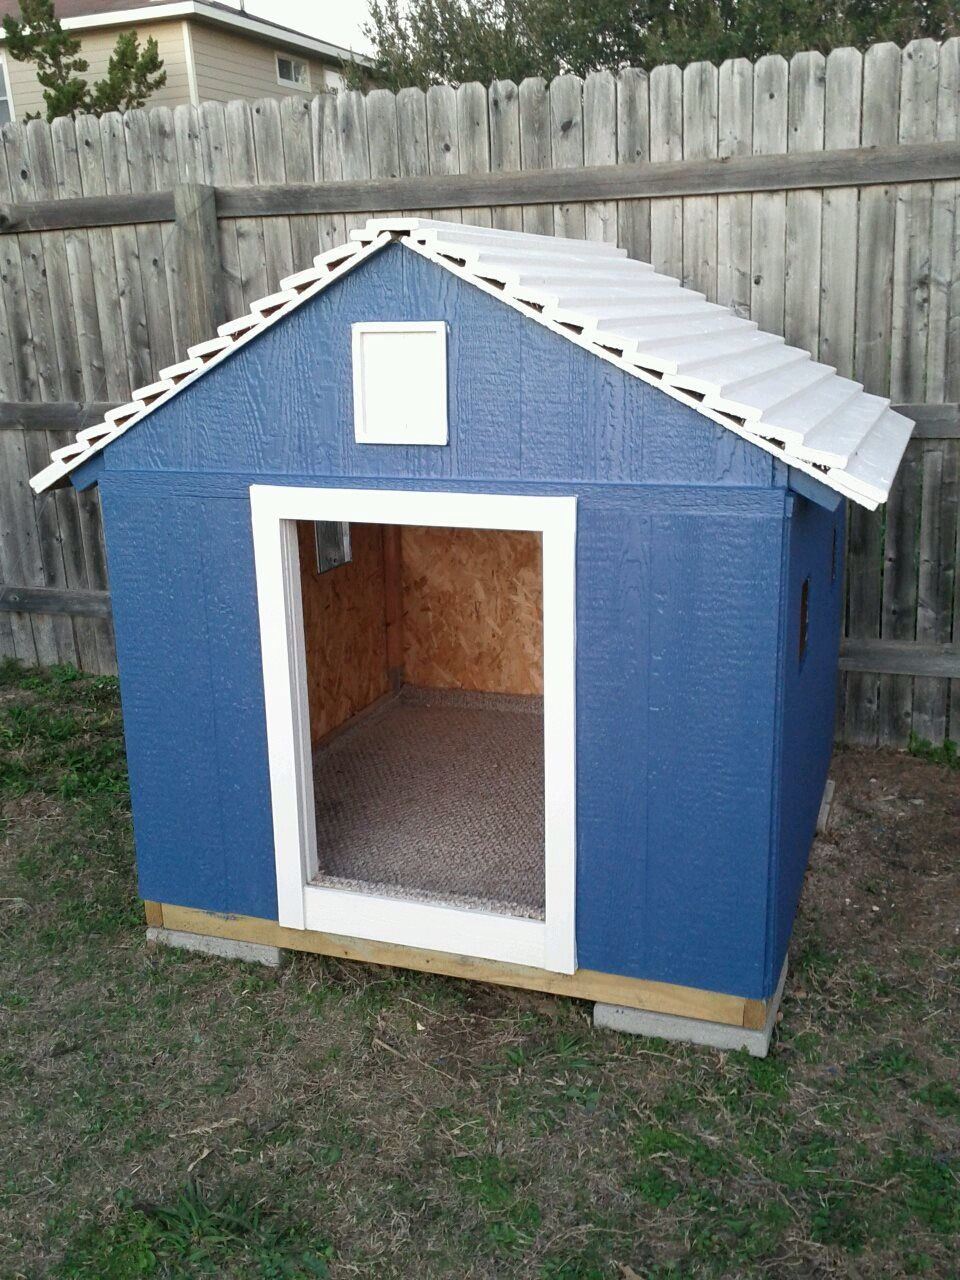 Dog house I built for a Great Dane ry solid and will last a lifetime took four grown men to move 4 feet all around x 4 feet in height as well